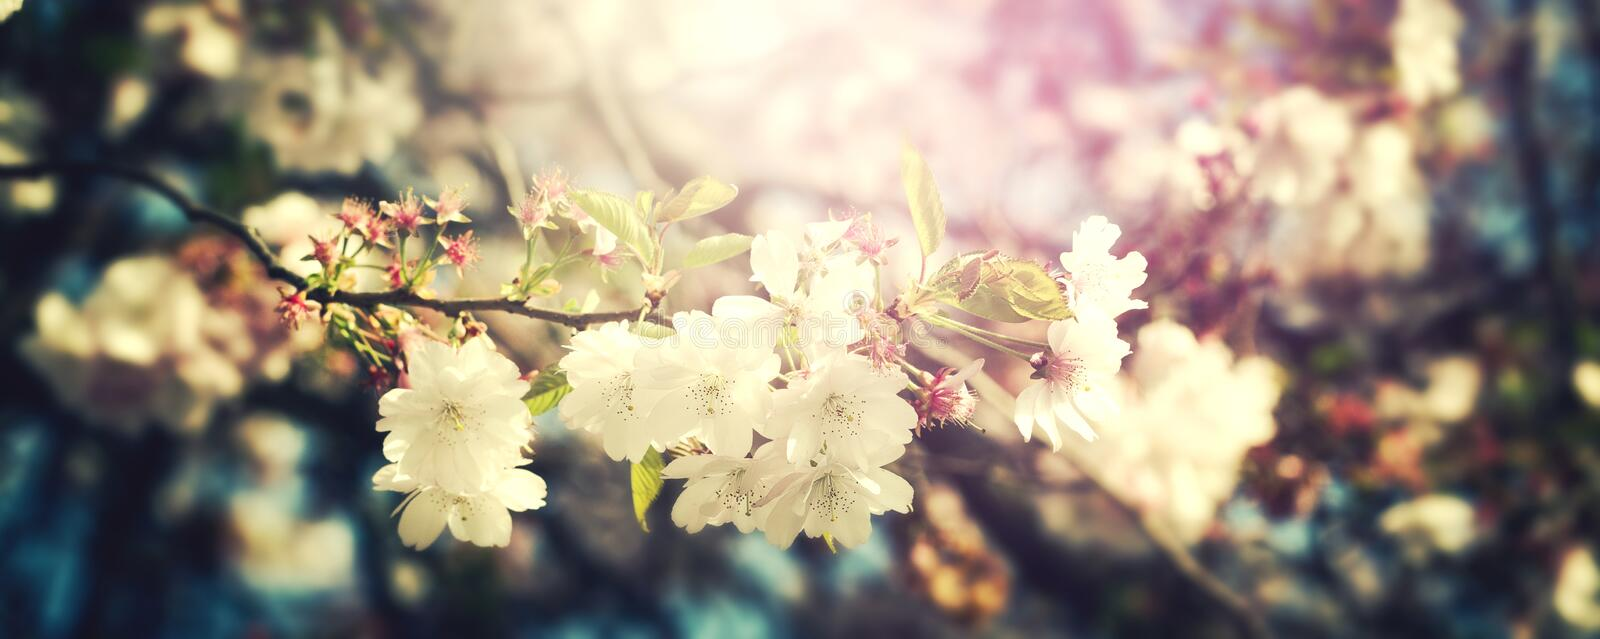 Beautiful colorful Flower Background Blur. Horizontal. Spring Co royalty free stock photos